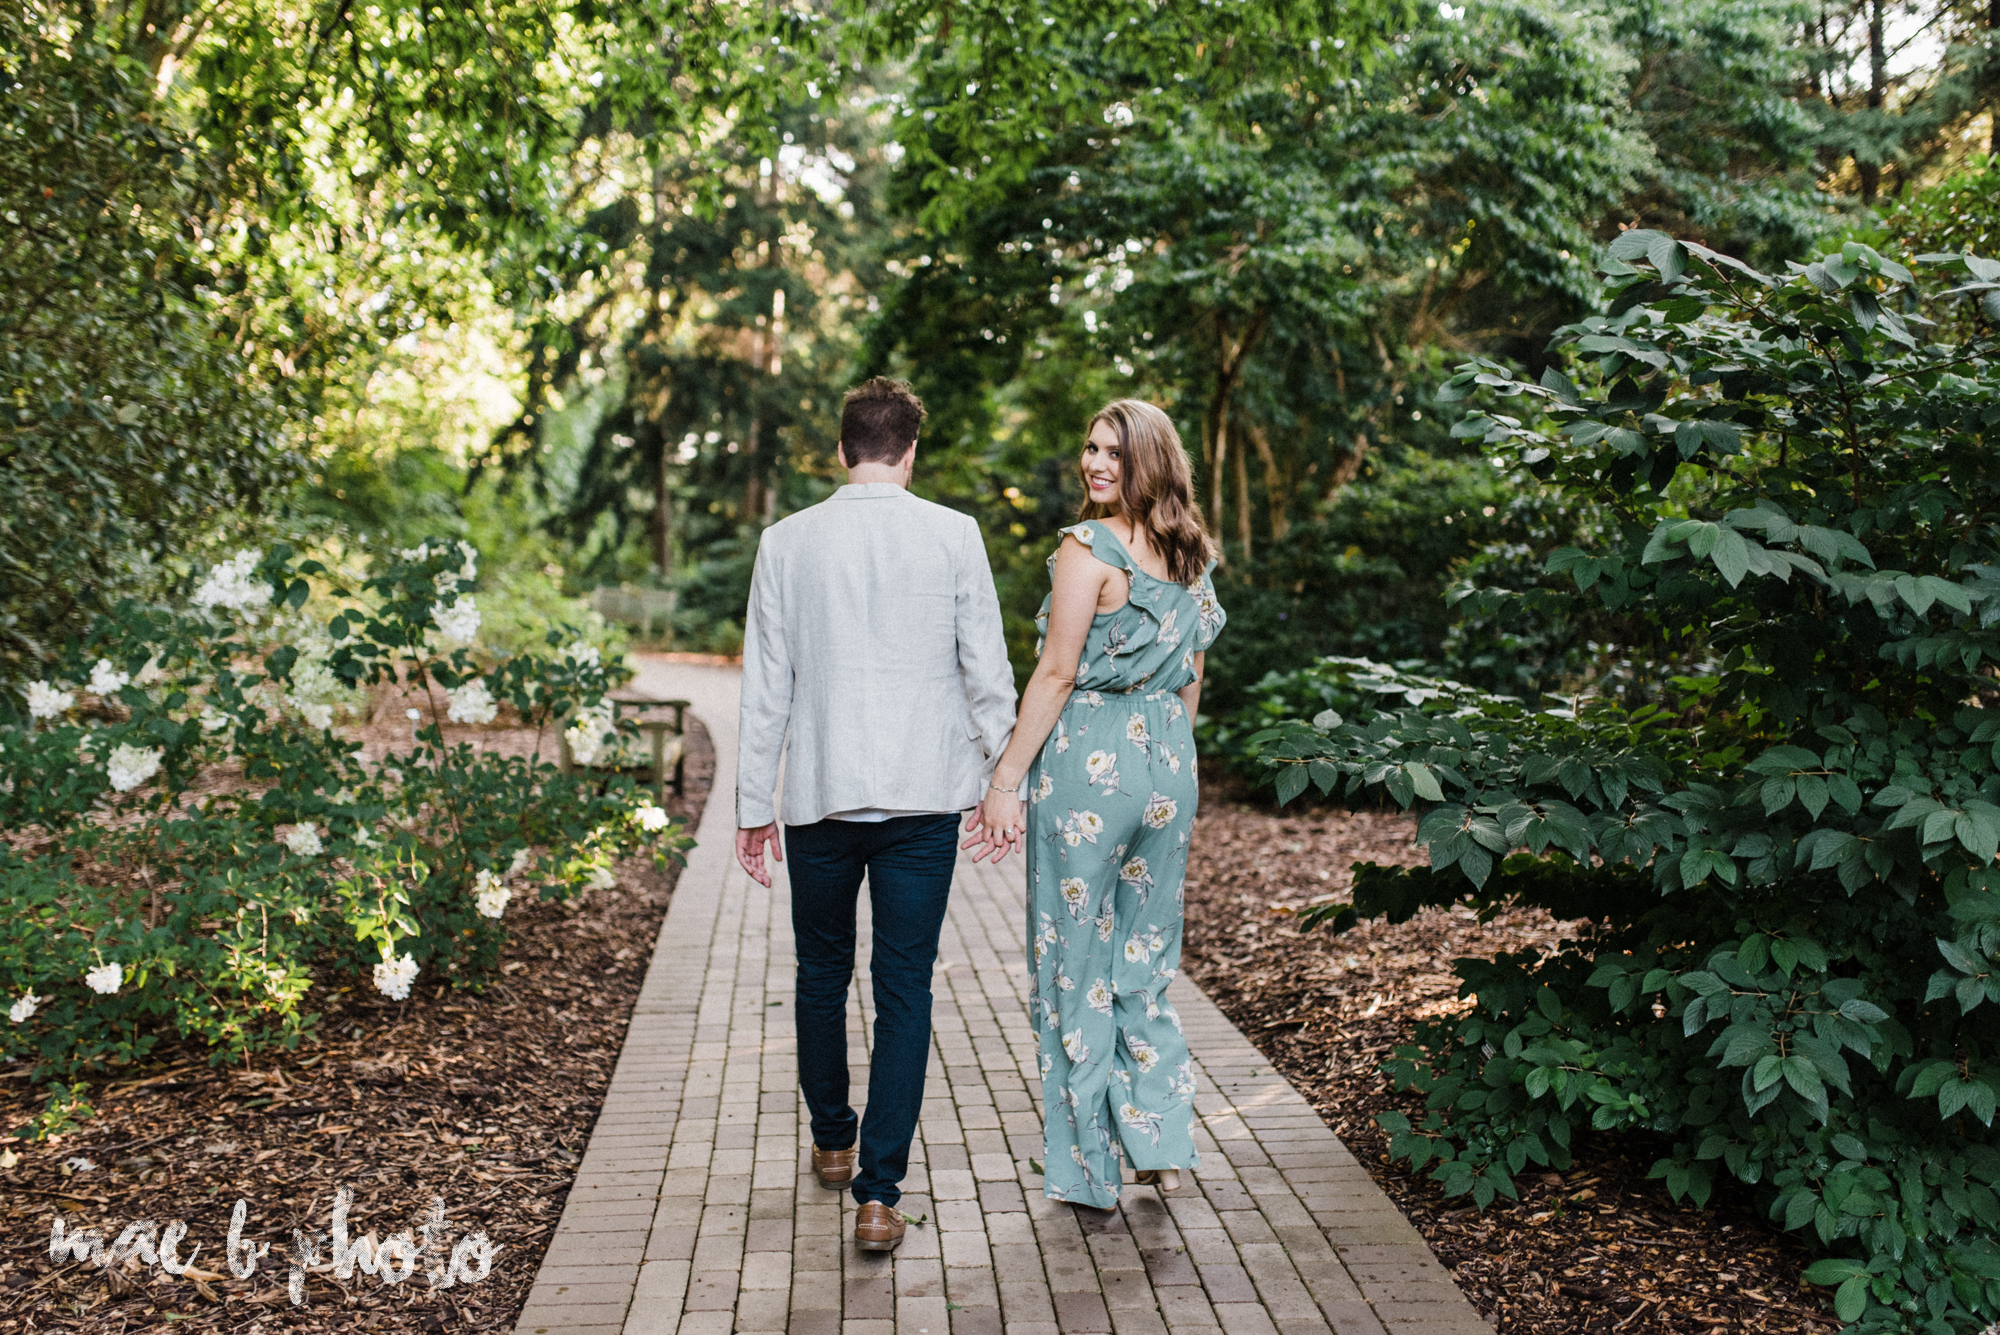 lauren and steve's summer engagement session at the rose gardens and lanterman's mill in mill creek park in youngstown ohio photographed by youngstown wedding photographer mae b photo-13.jpg